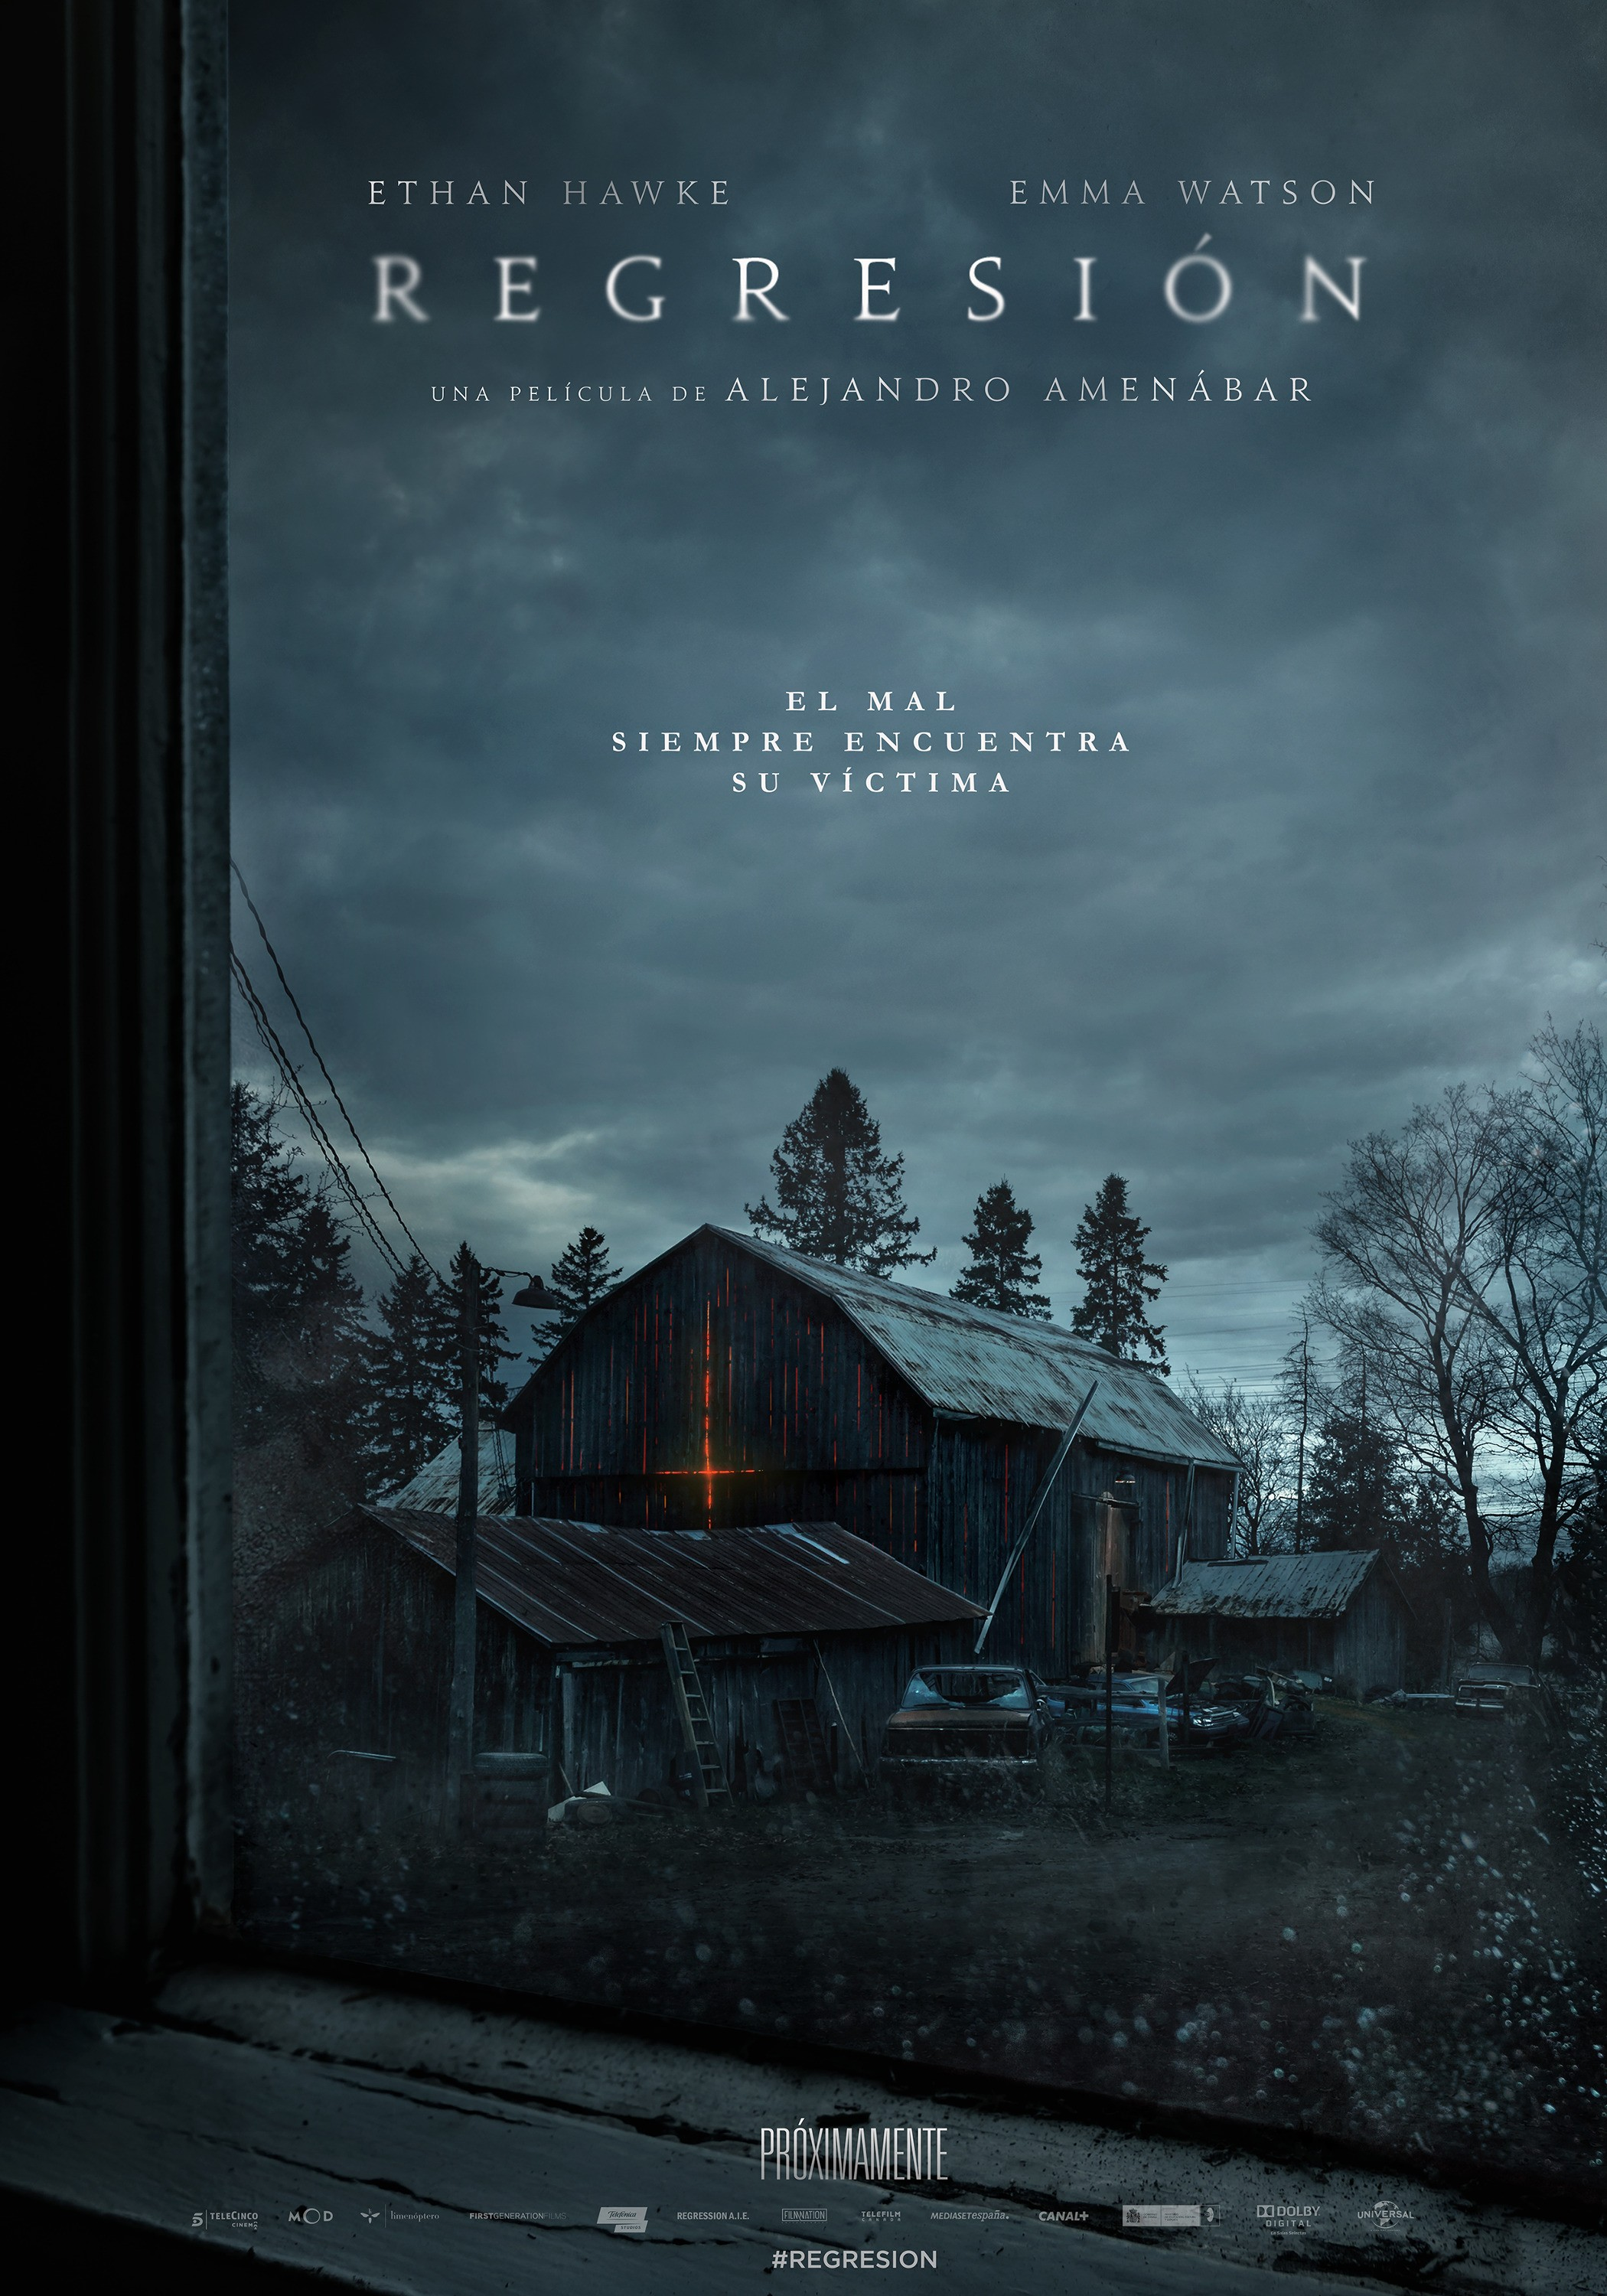 Regression-Official Poster XXLG-13FEVEREIRO2015-01